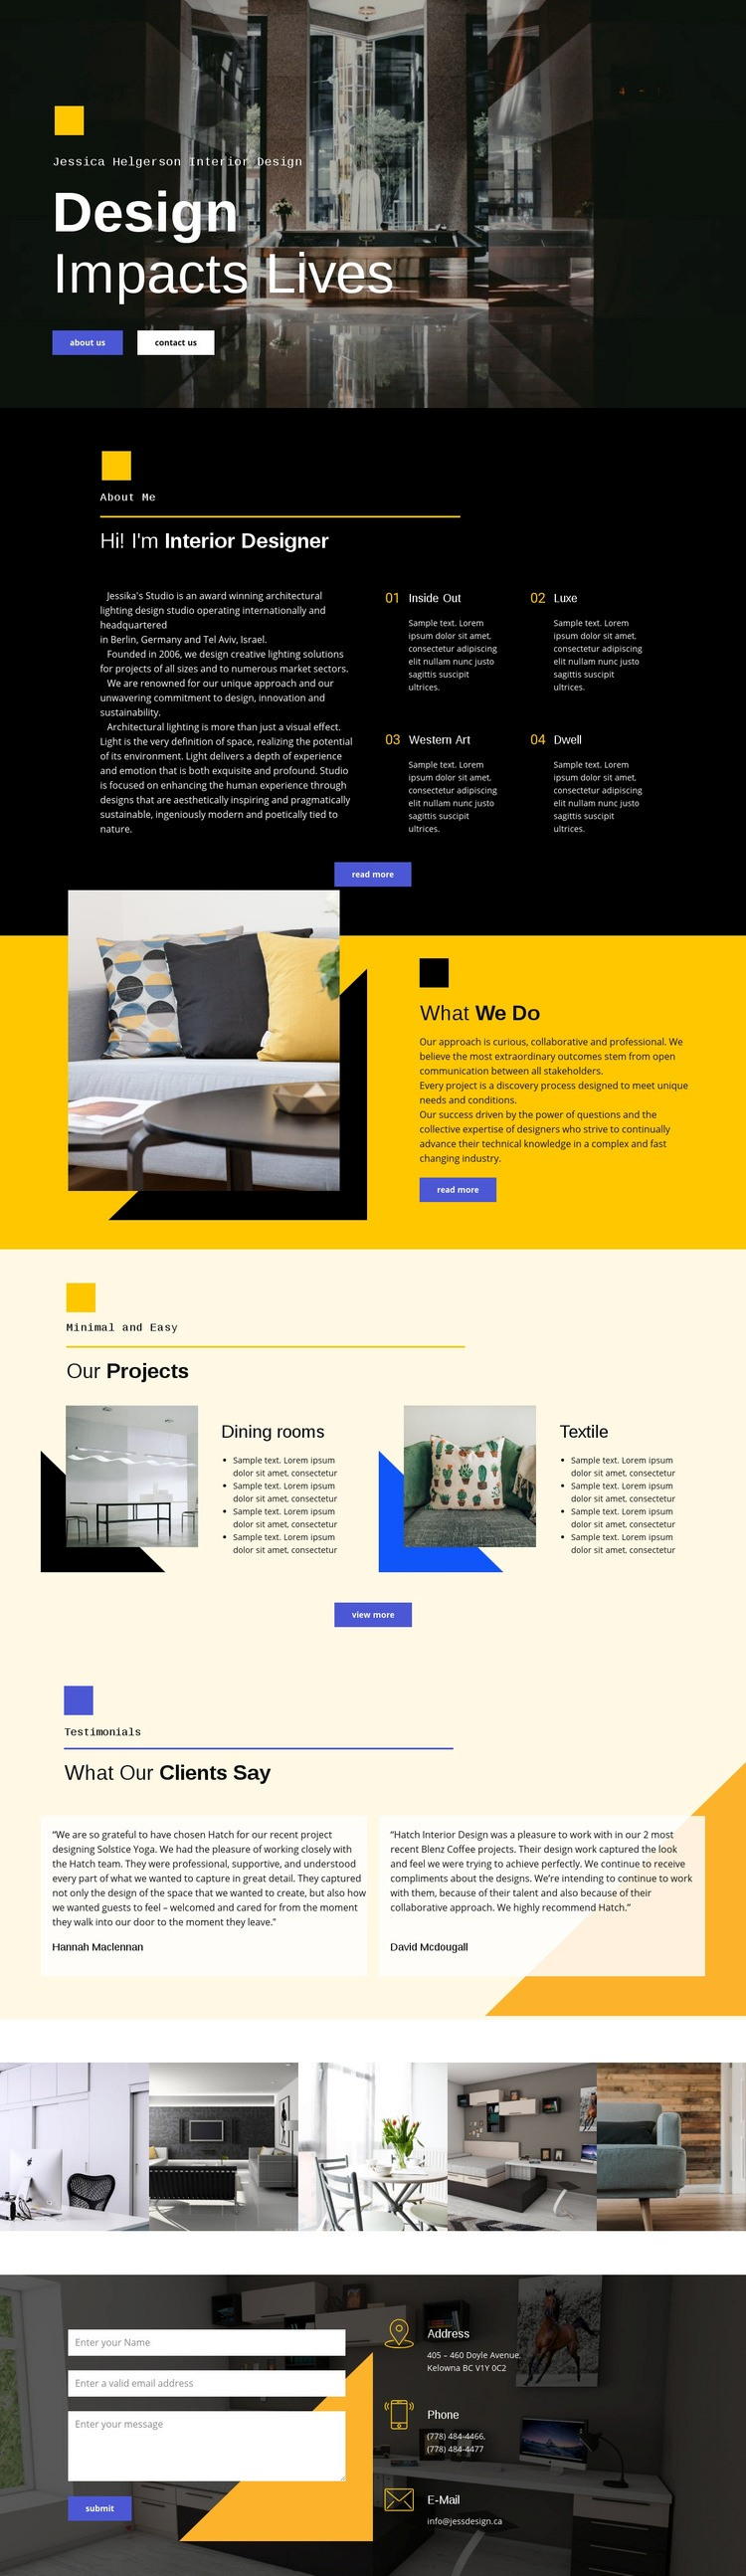 Design affects life Html Code Example